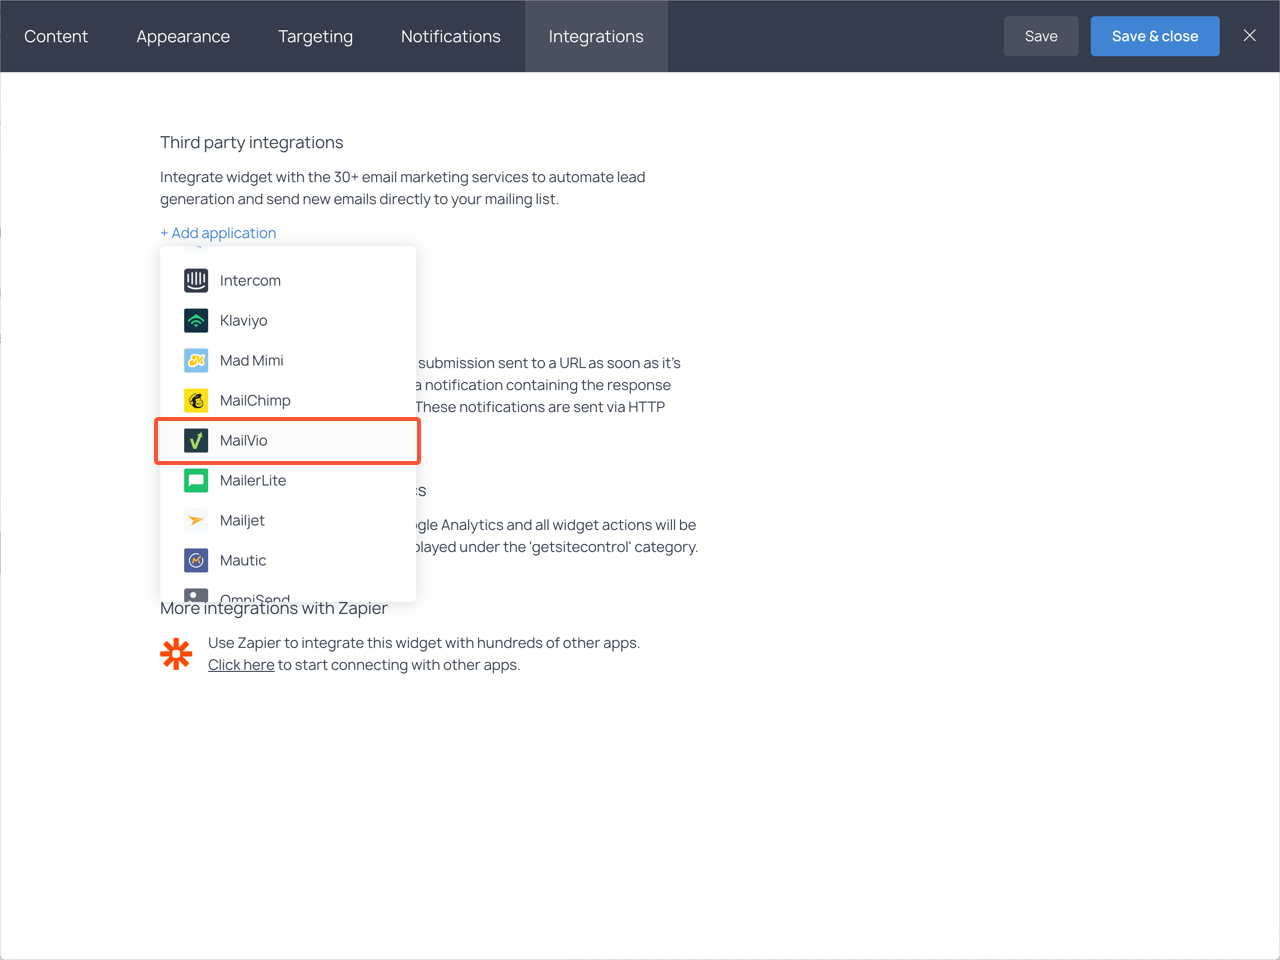 Integrations section with the highlighted Mailvio item in the dropdown list